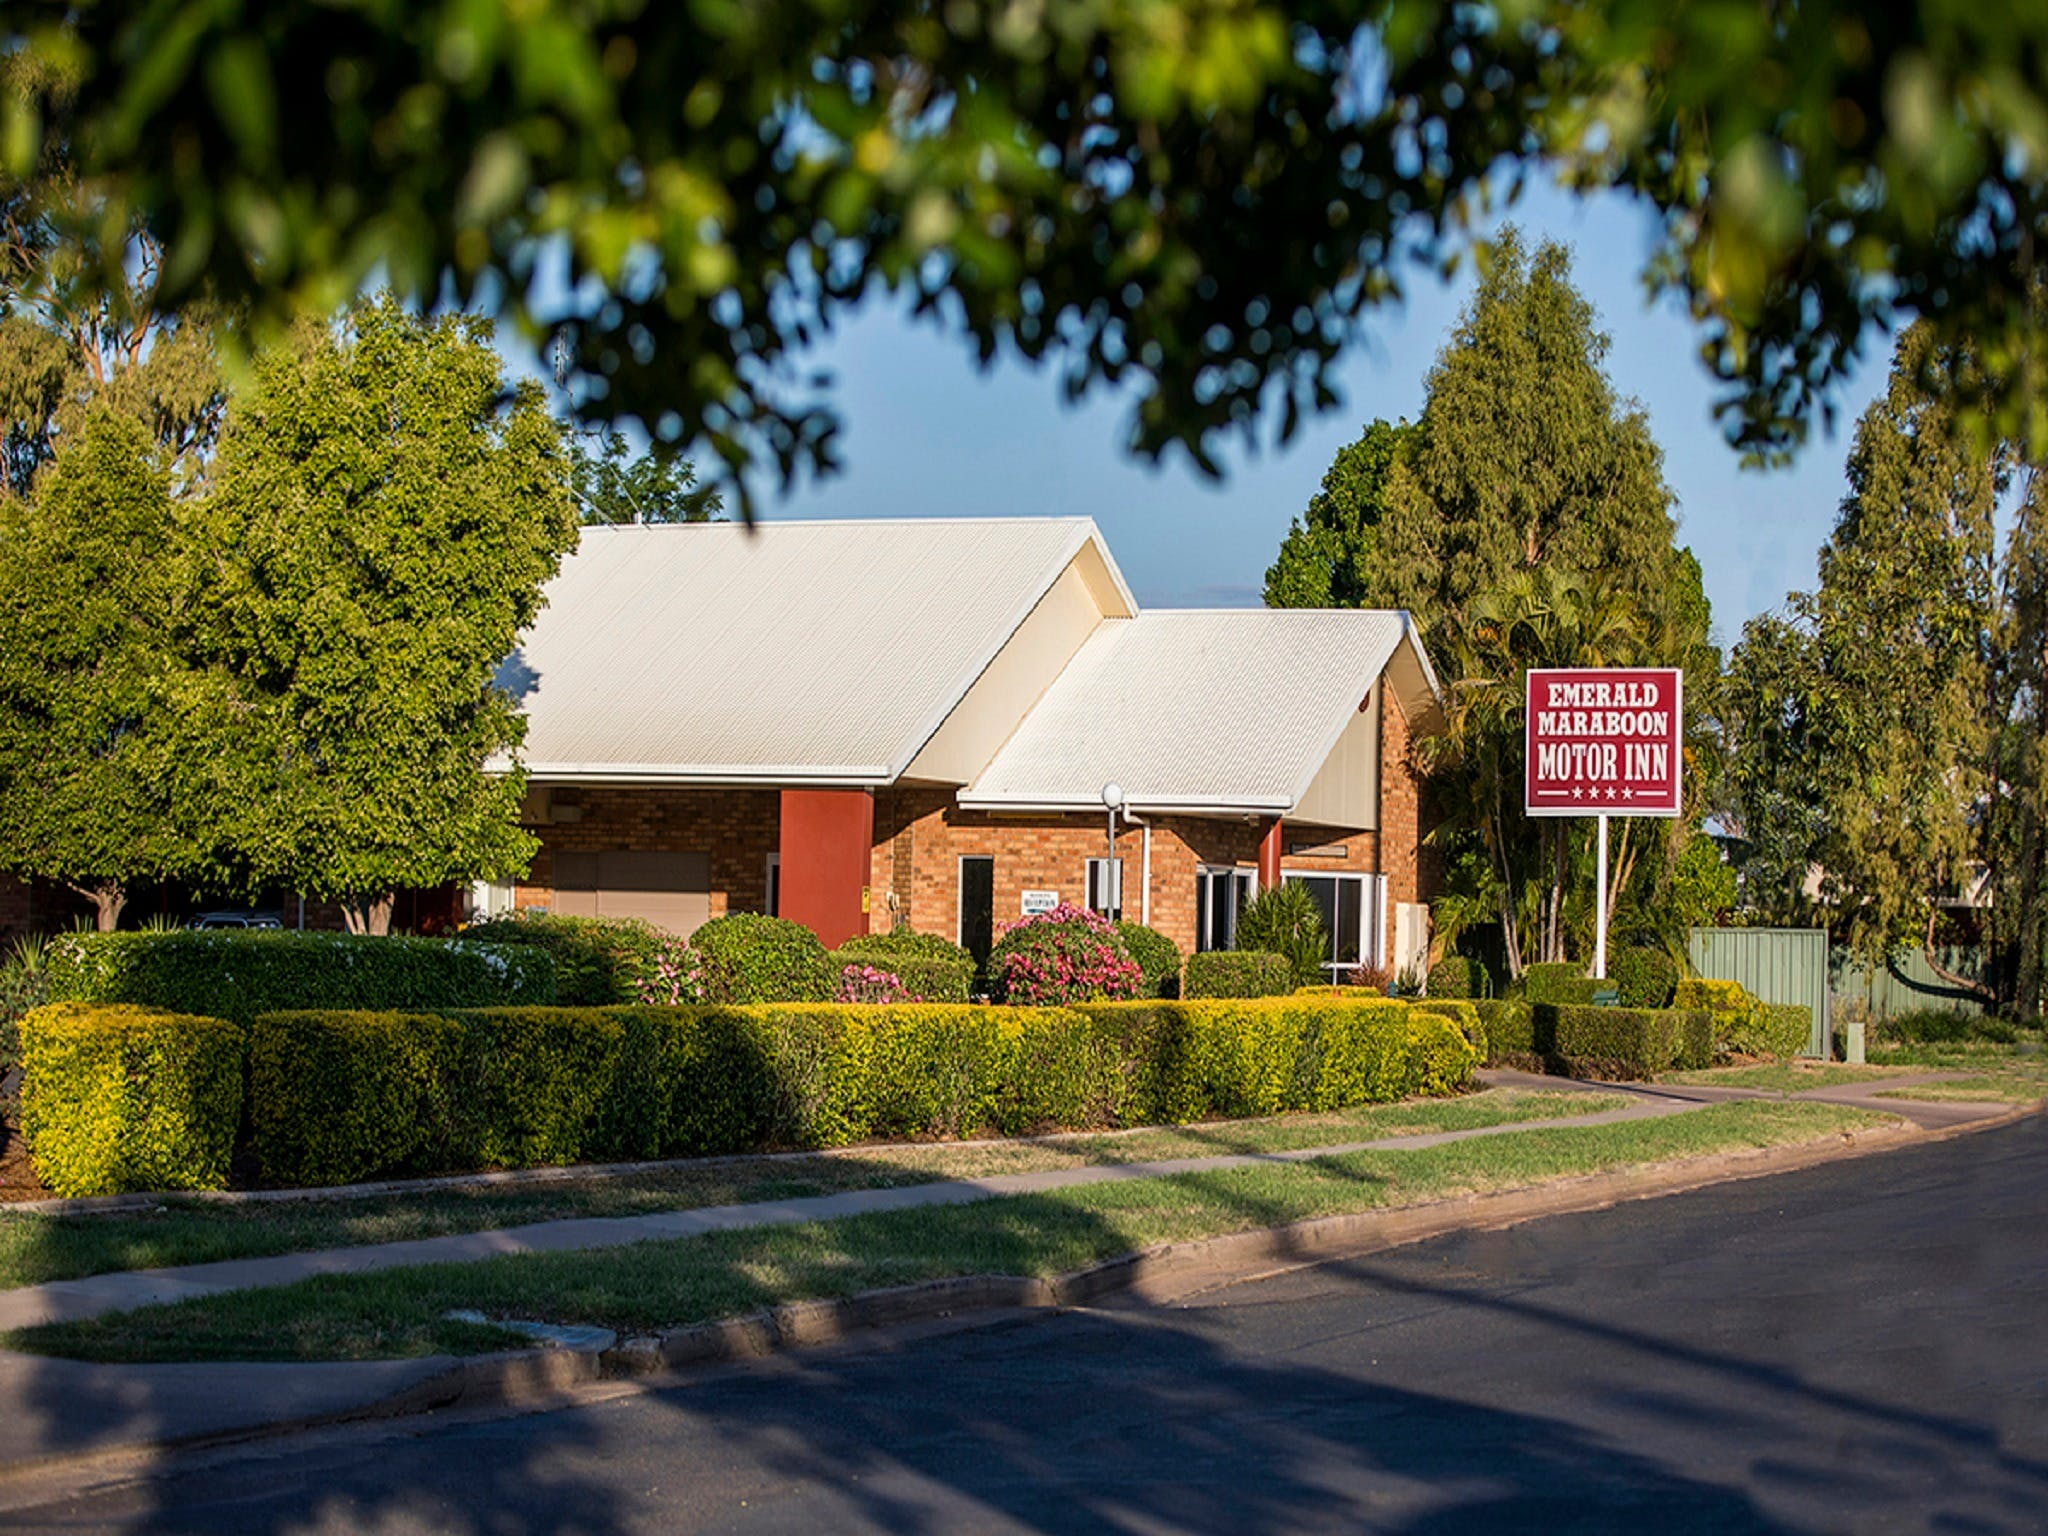 Emerald Maraboon Motor Inn - Geraldton Accommodation